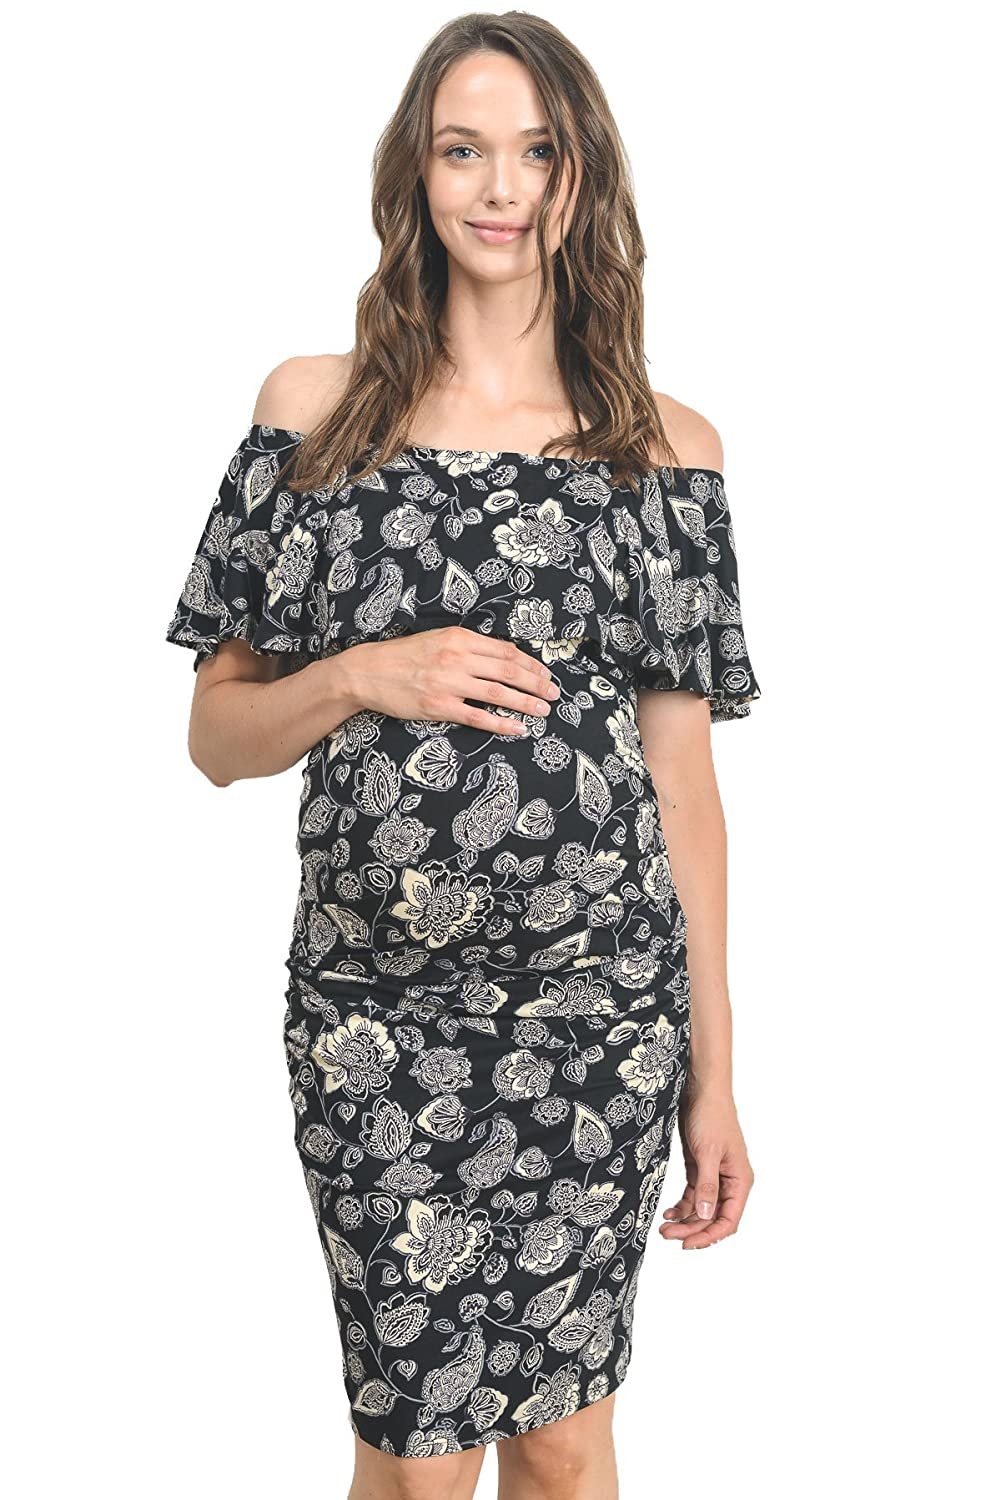 Maternity dresses amazon hello miz womens floral ruffle off shoulder maternity dress made in usa ombrellifo Gallery